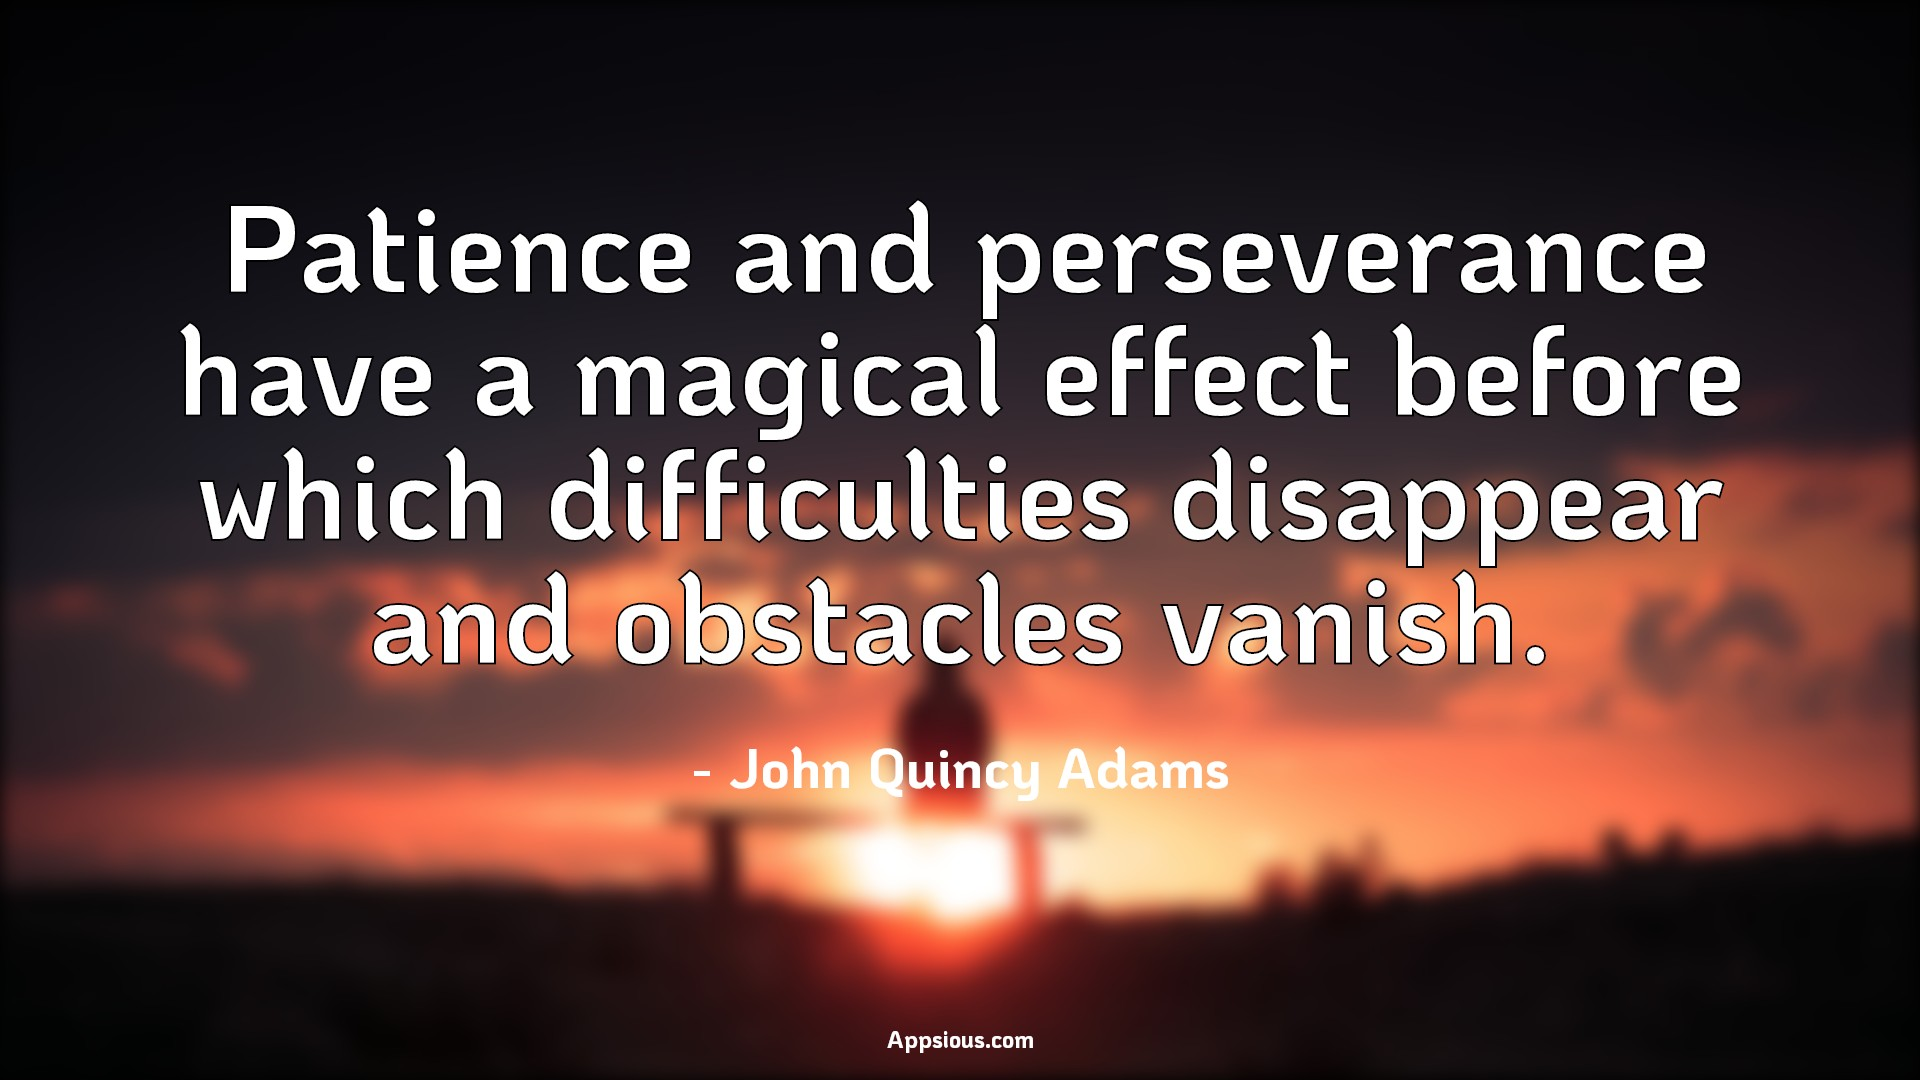 Patience and perseverance have a magical effect before which difficulties disappear and obstacles vanish.